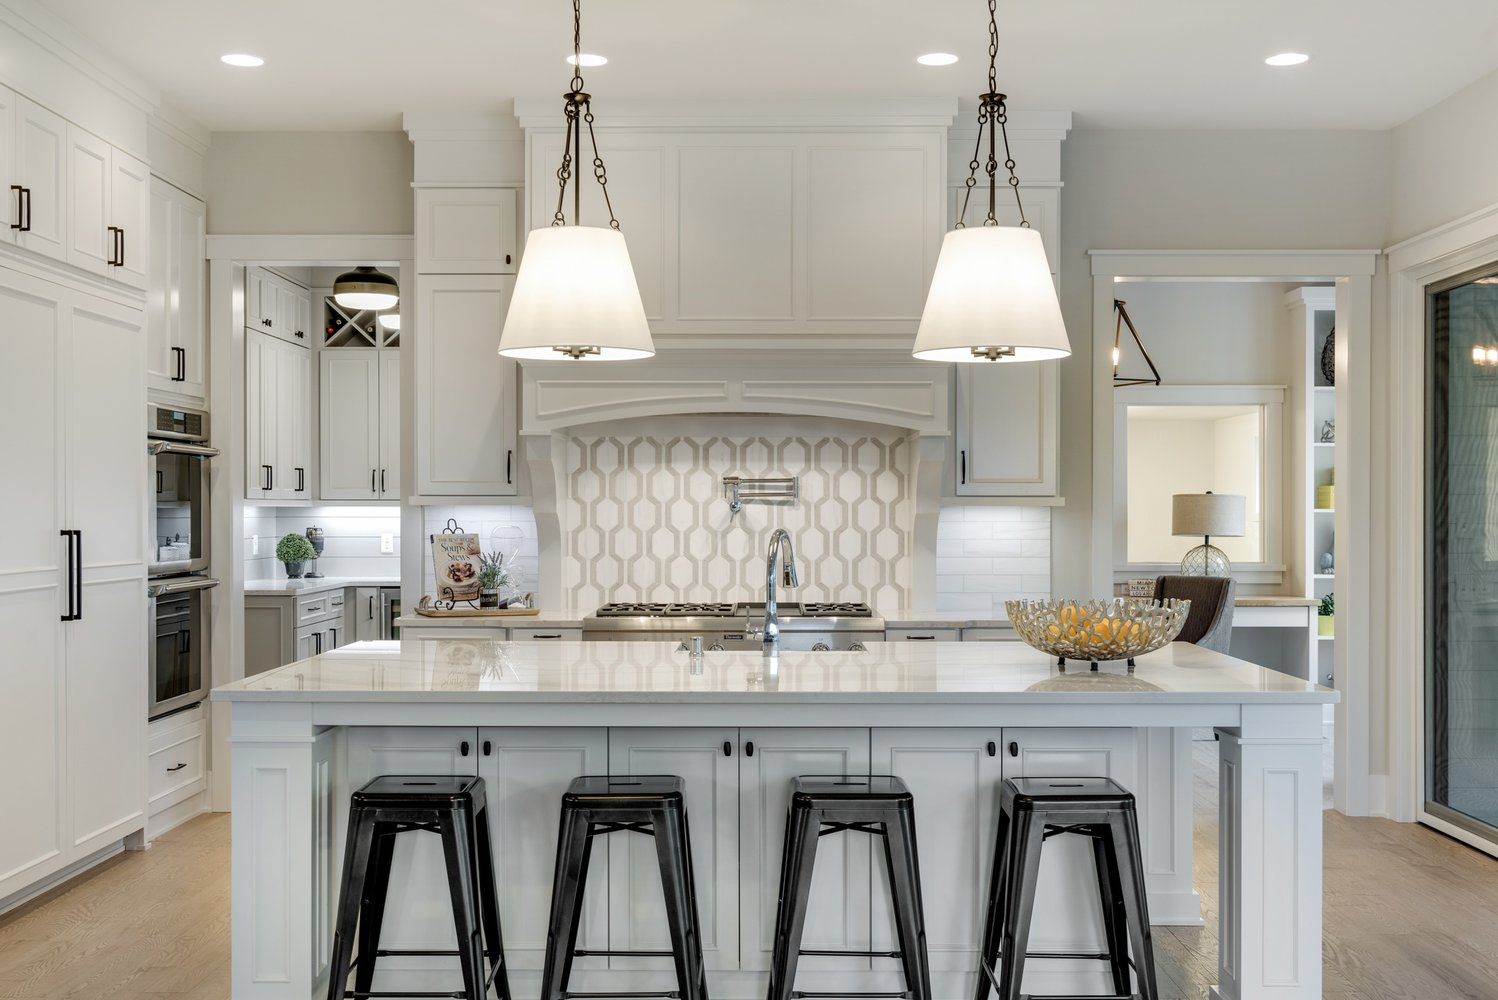 Kitchen Island in Home on Lake Minnetonka